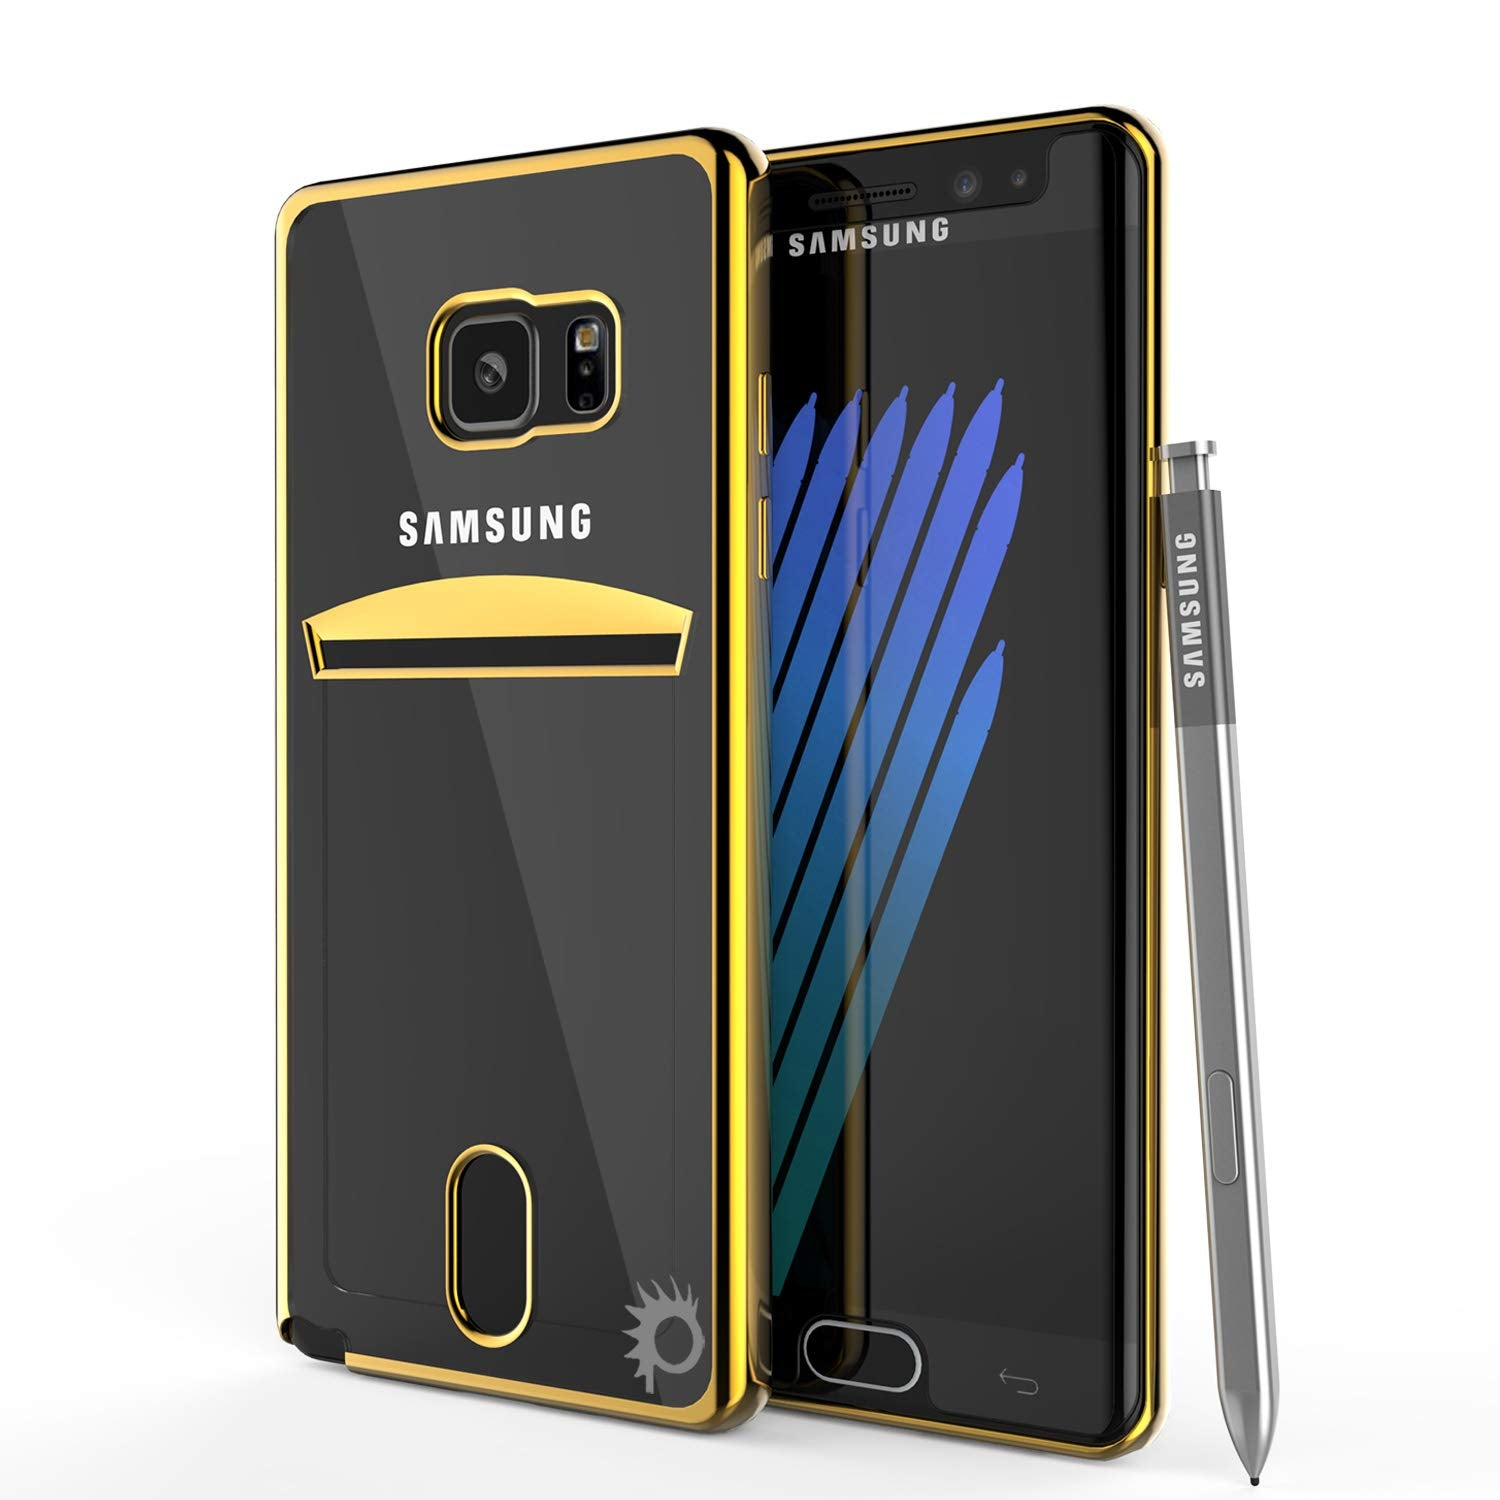 Galaxy Note FE Case, PUNKCASE® LUCID Gold Series | Card Slot | SHIELD Screen Protector | Ultra fit